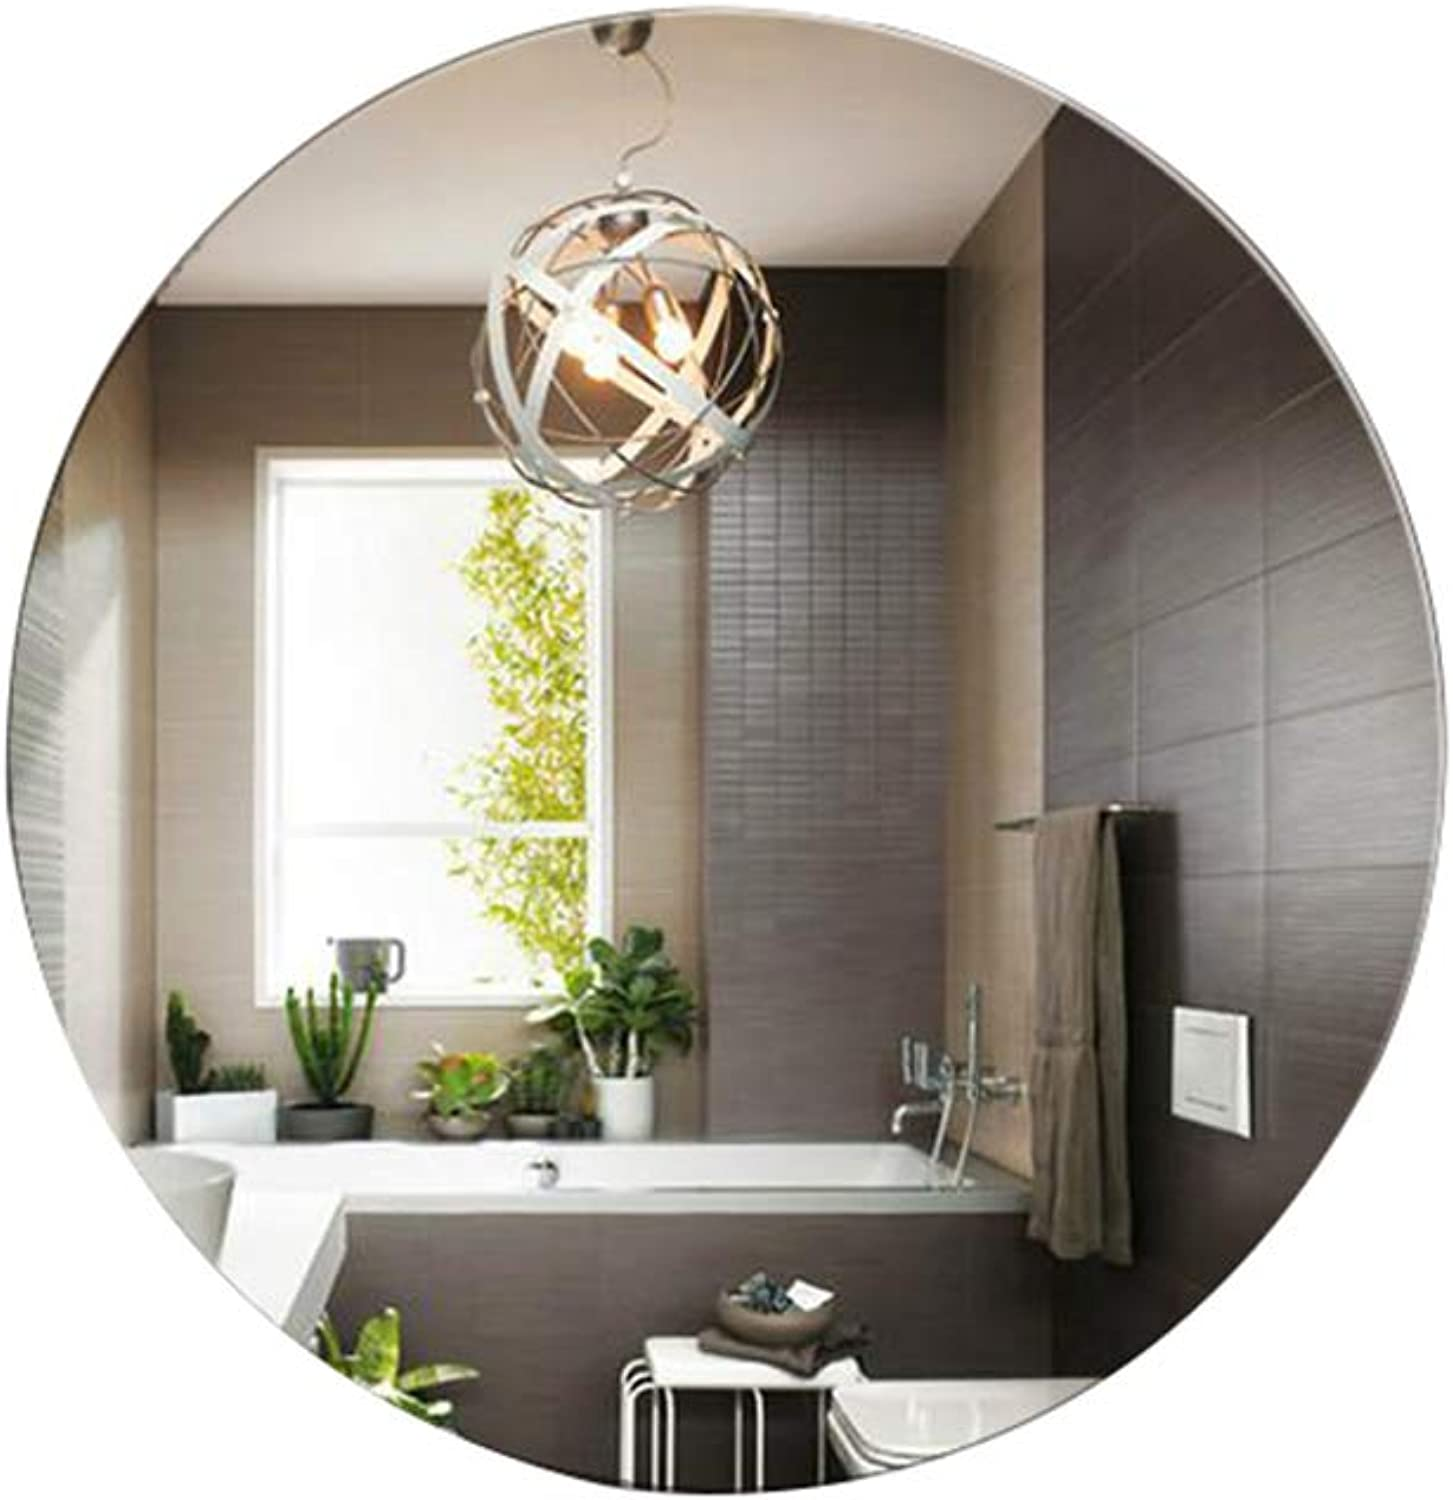 Round Mirror Wall-Mounted Diameter 40 50 60 70cm Frameless Concise Decorative for Bathroom Living Room Glass Dressing Mirror with Hanging Fixings